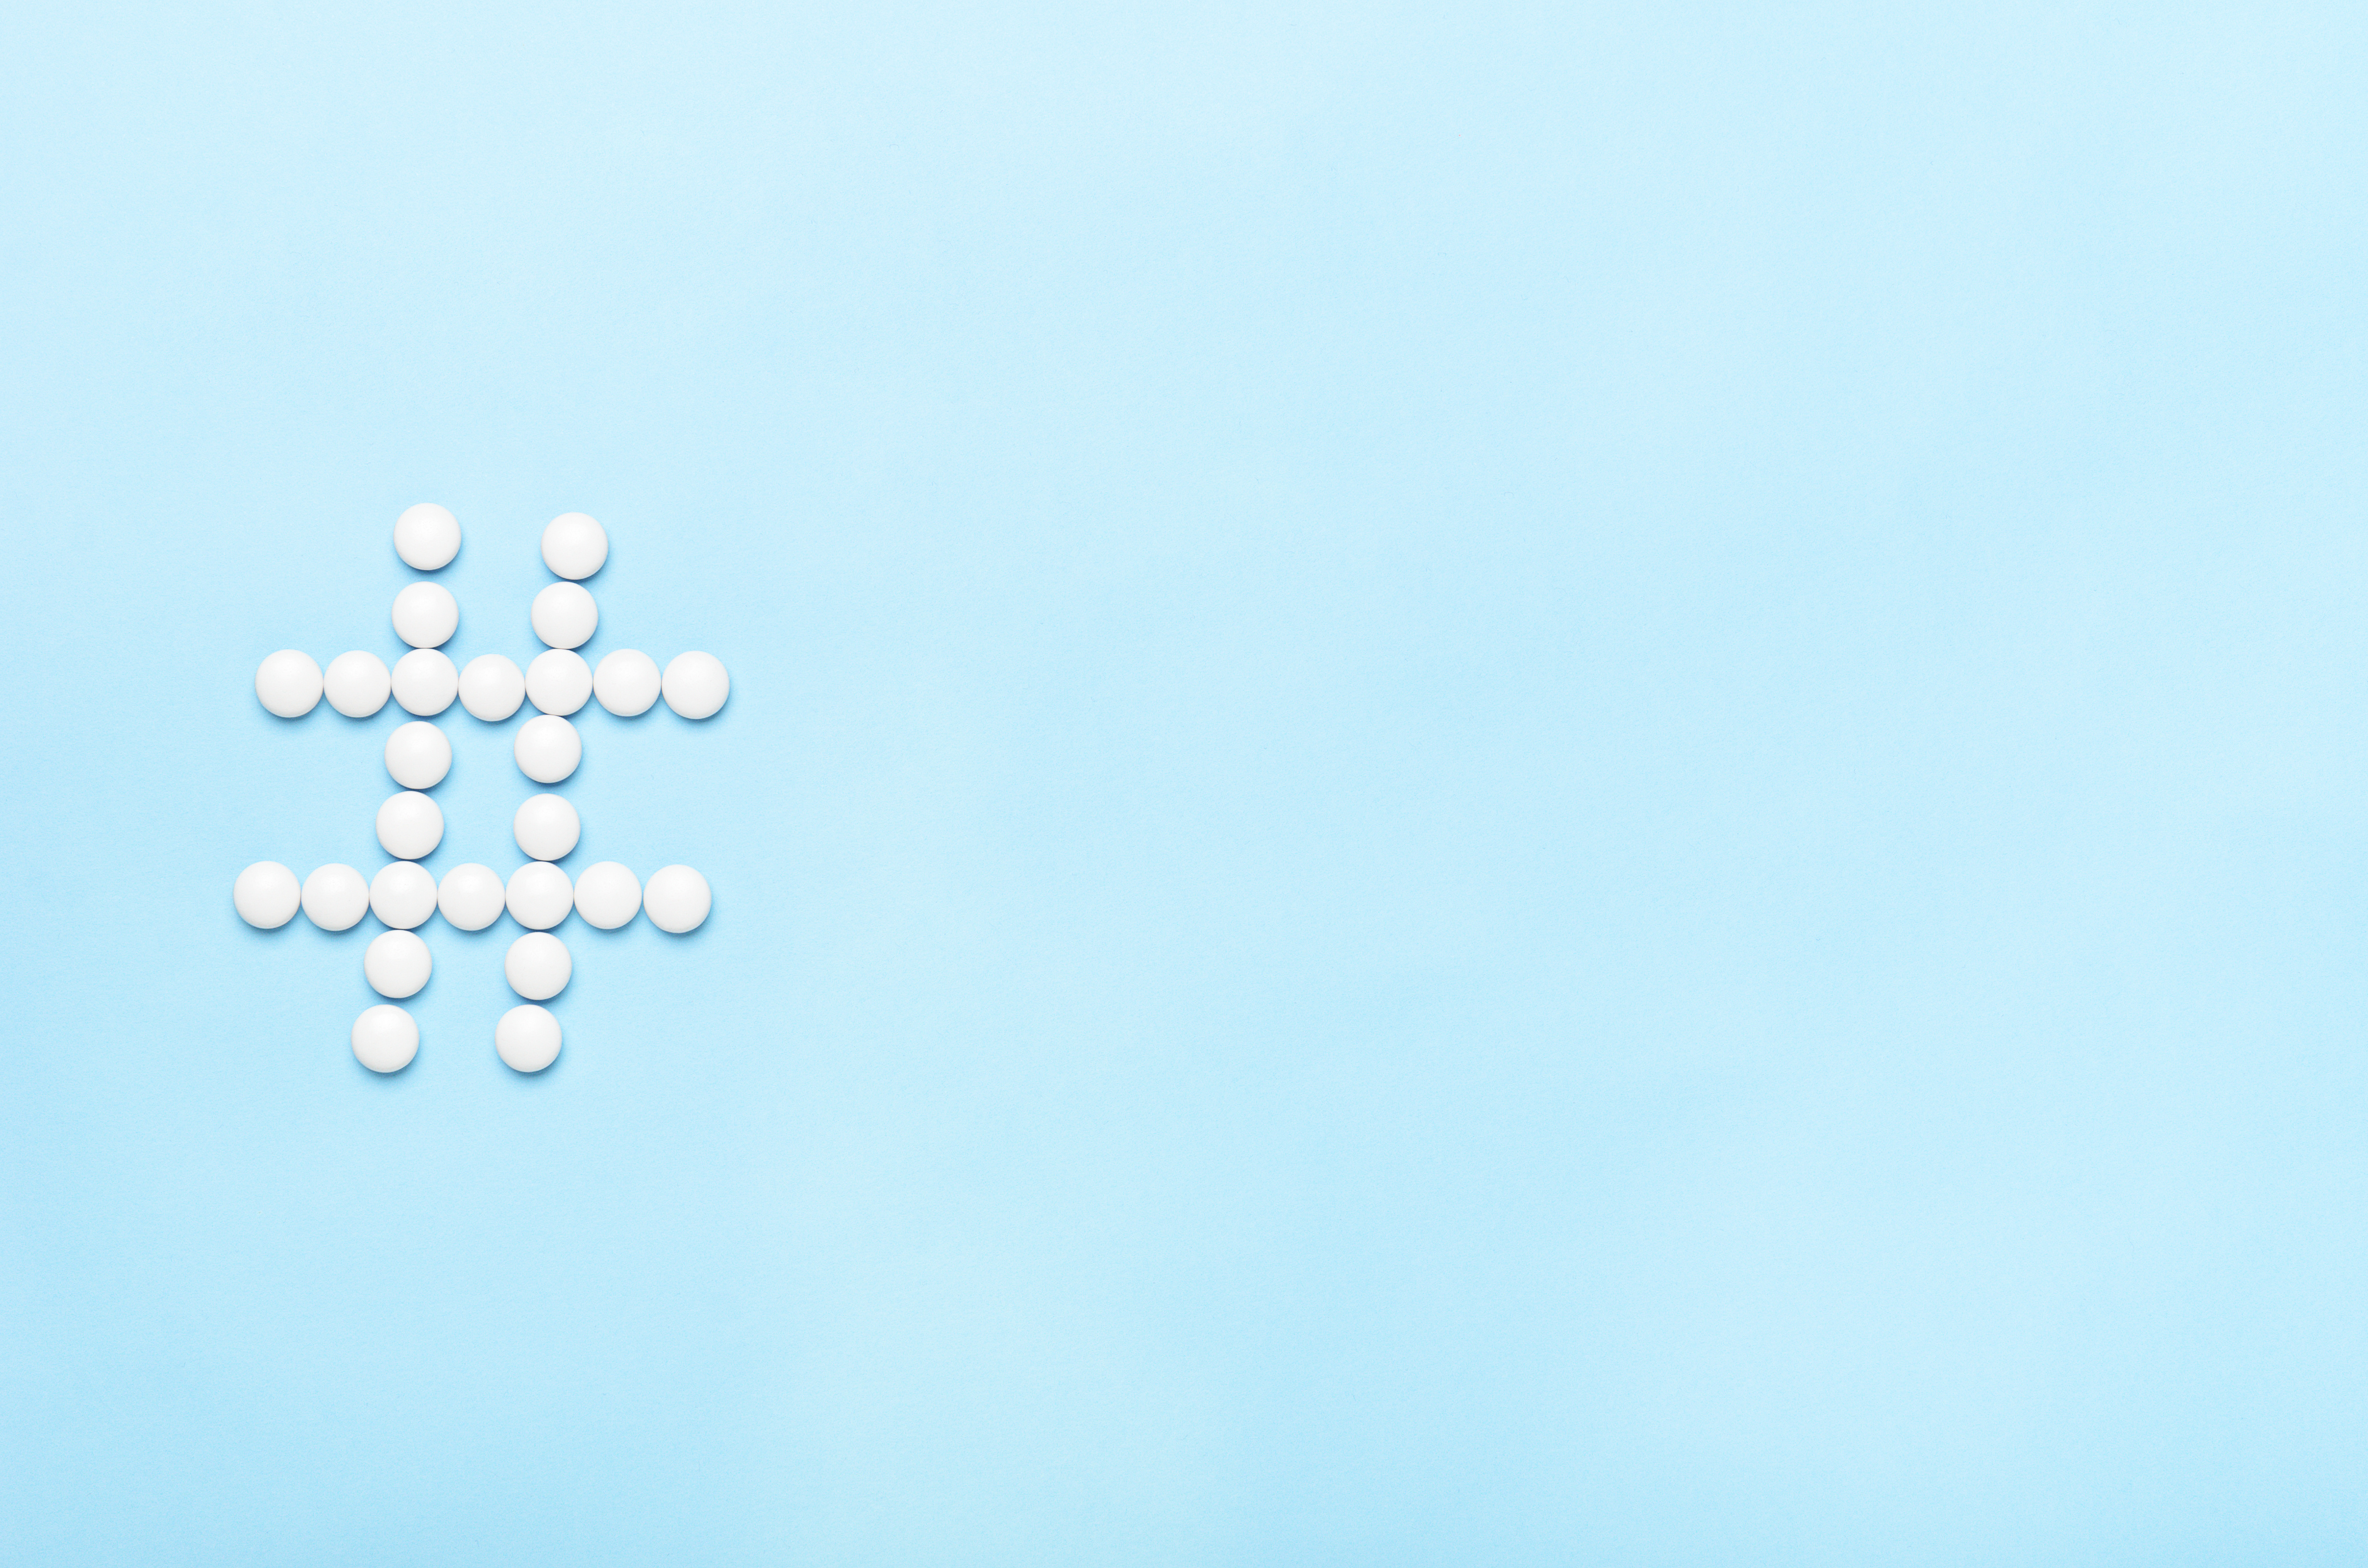 How do the top 5 pharma brands communicate on Twitter, and how do they compare?